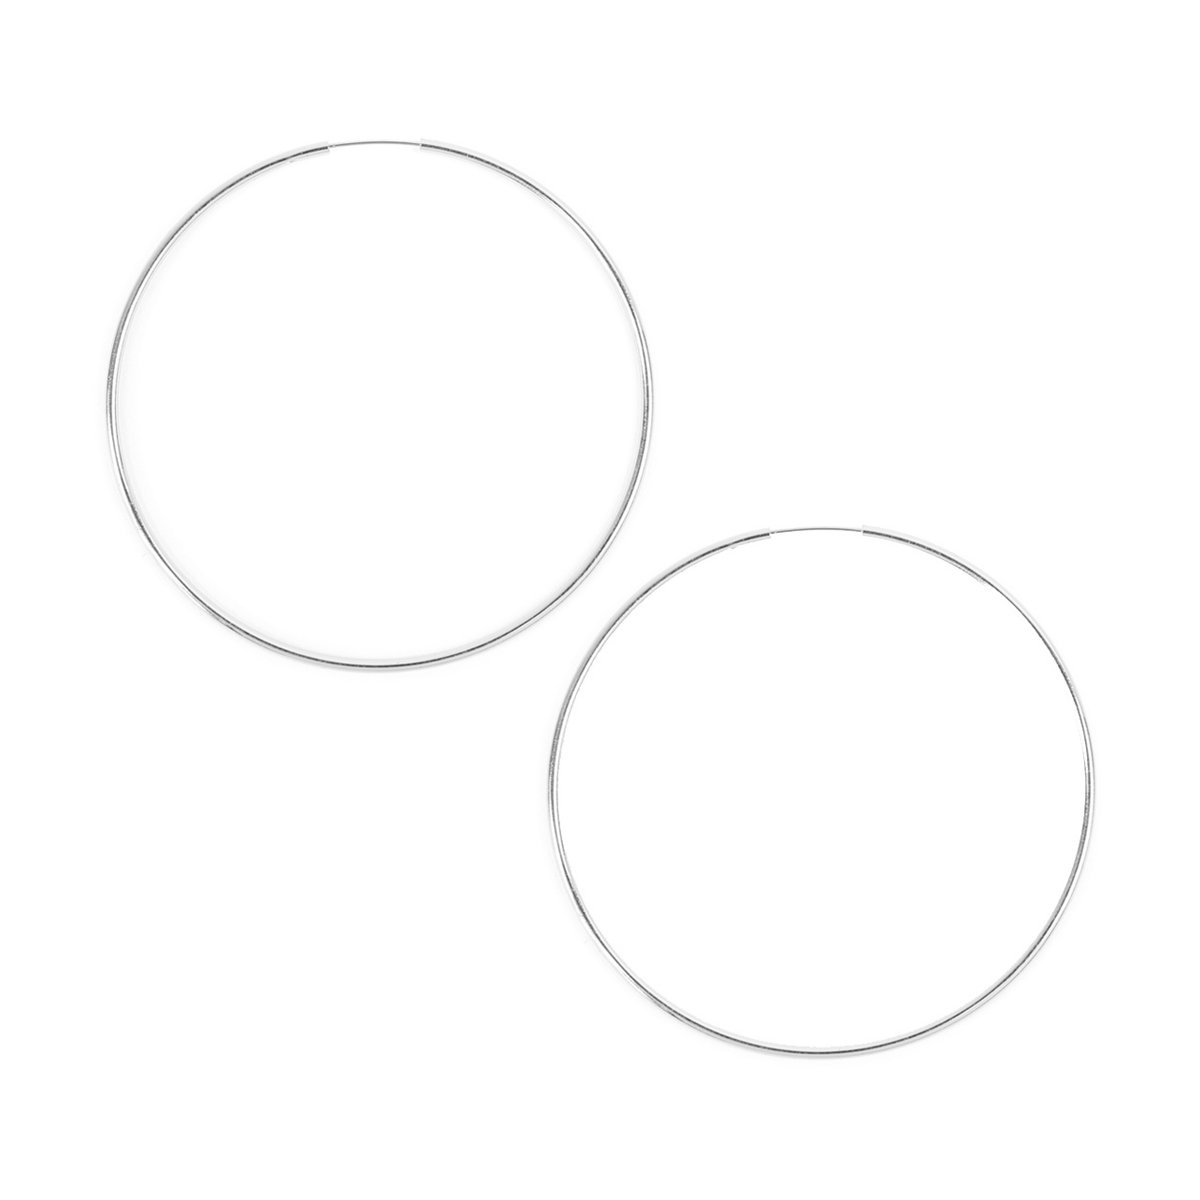 RIAH FASHION Lightweight Endless Hoop Earrings - Round Circle Seamless Thin Hoops (Round Hoop 1 - Silver - Medium)